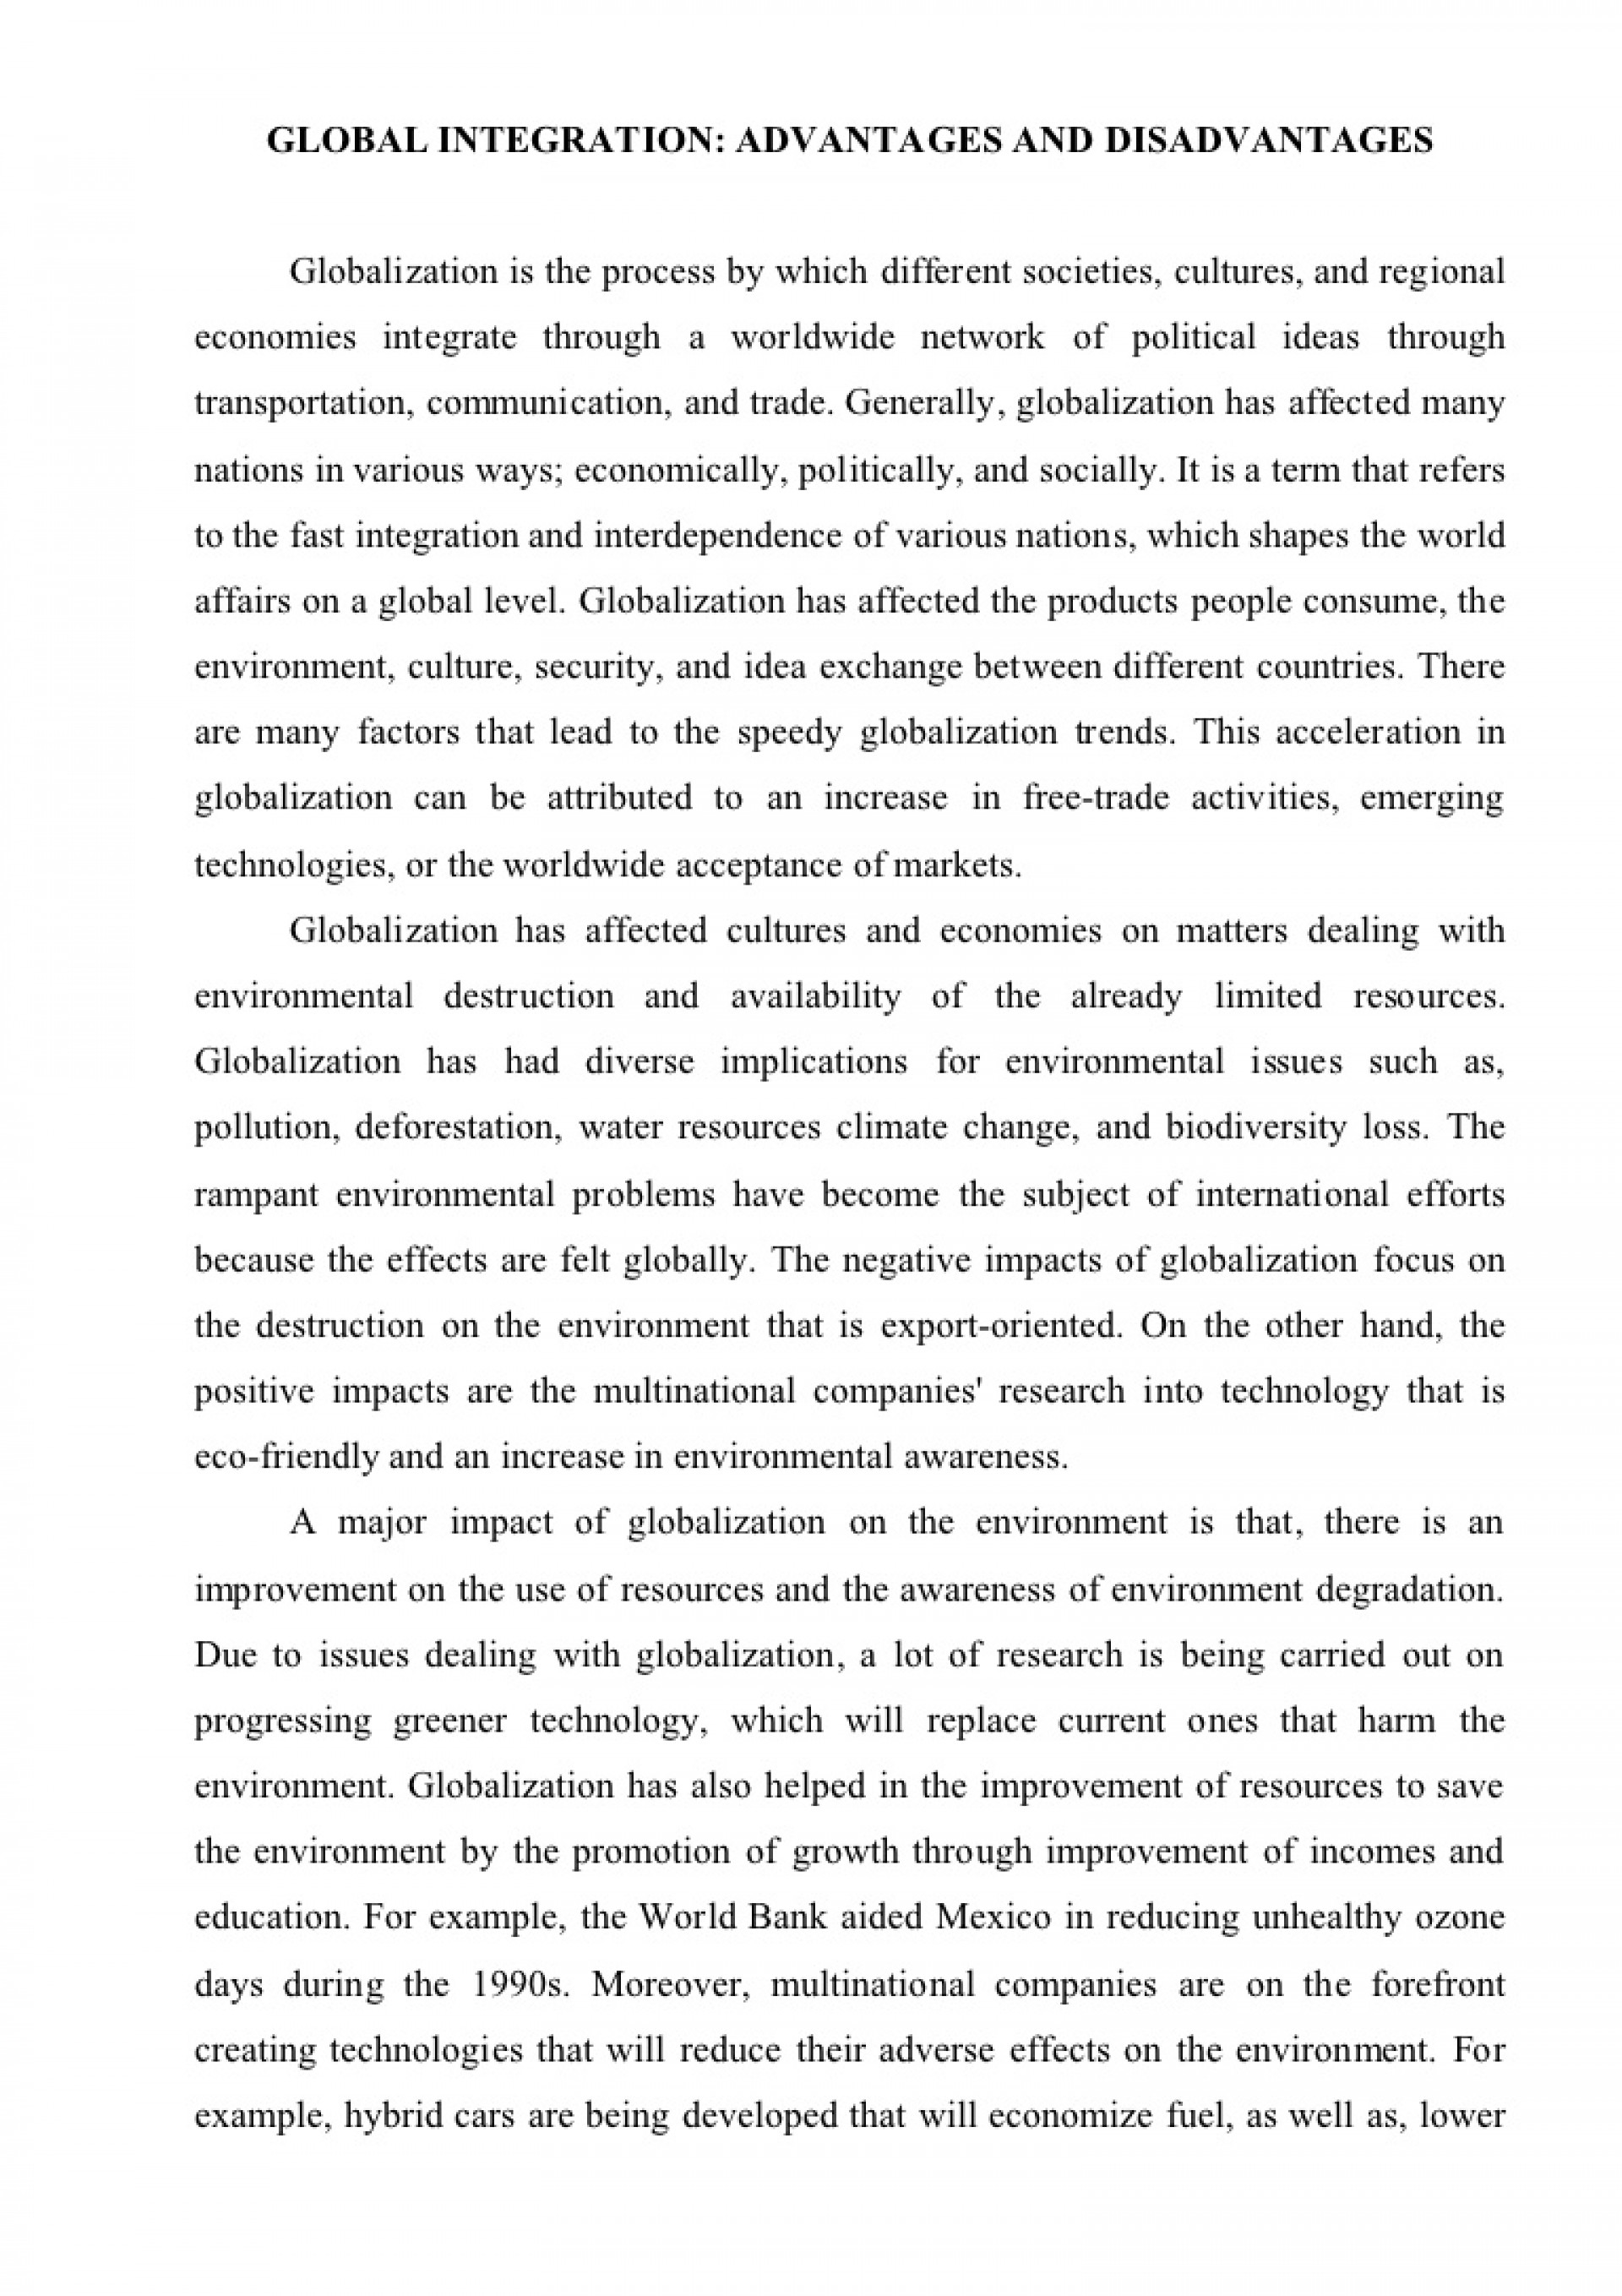 021 Essayglobalization Phpapp02 Thumbnail Essay Example Advantage And Disadvantage Of Shocking Science Advantages Disadvantages Pdf In Hindi English 1920